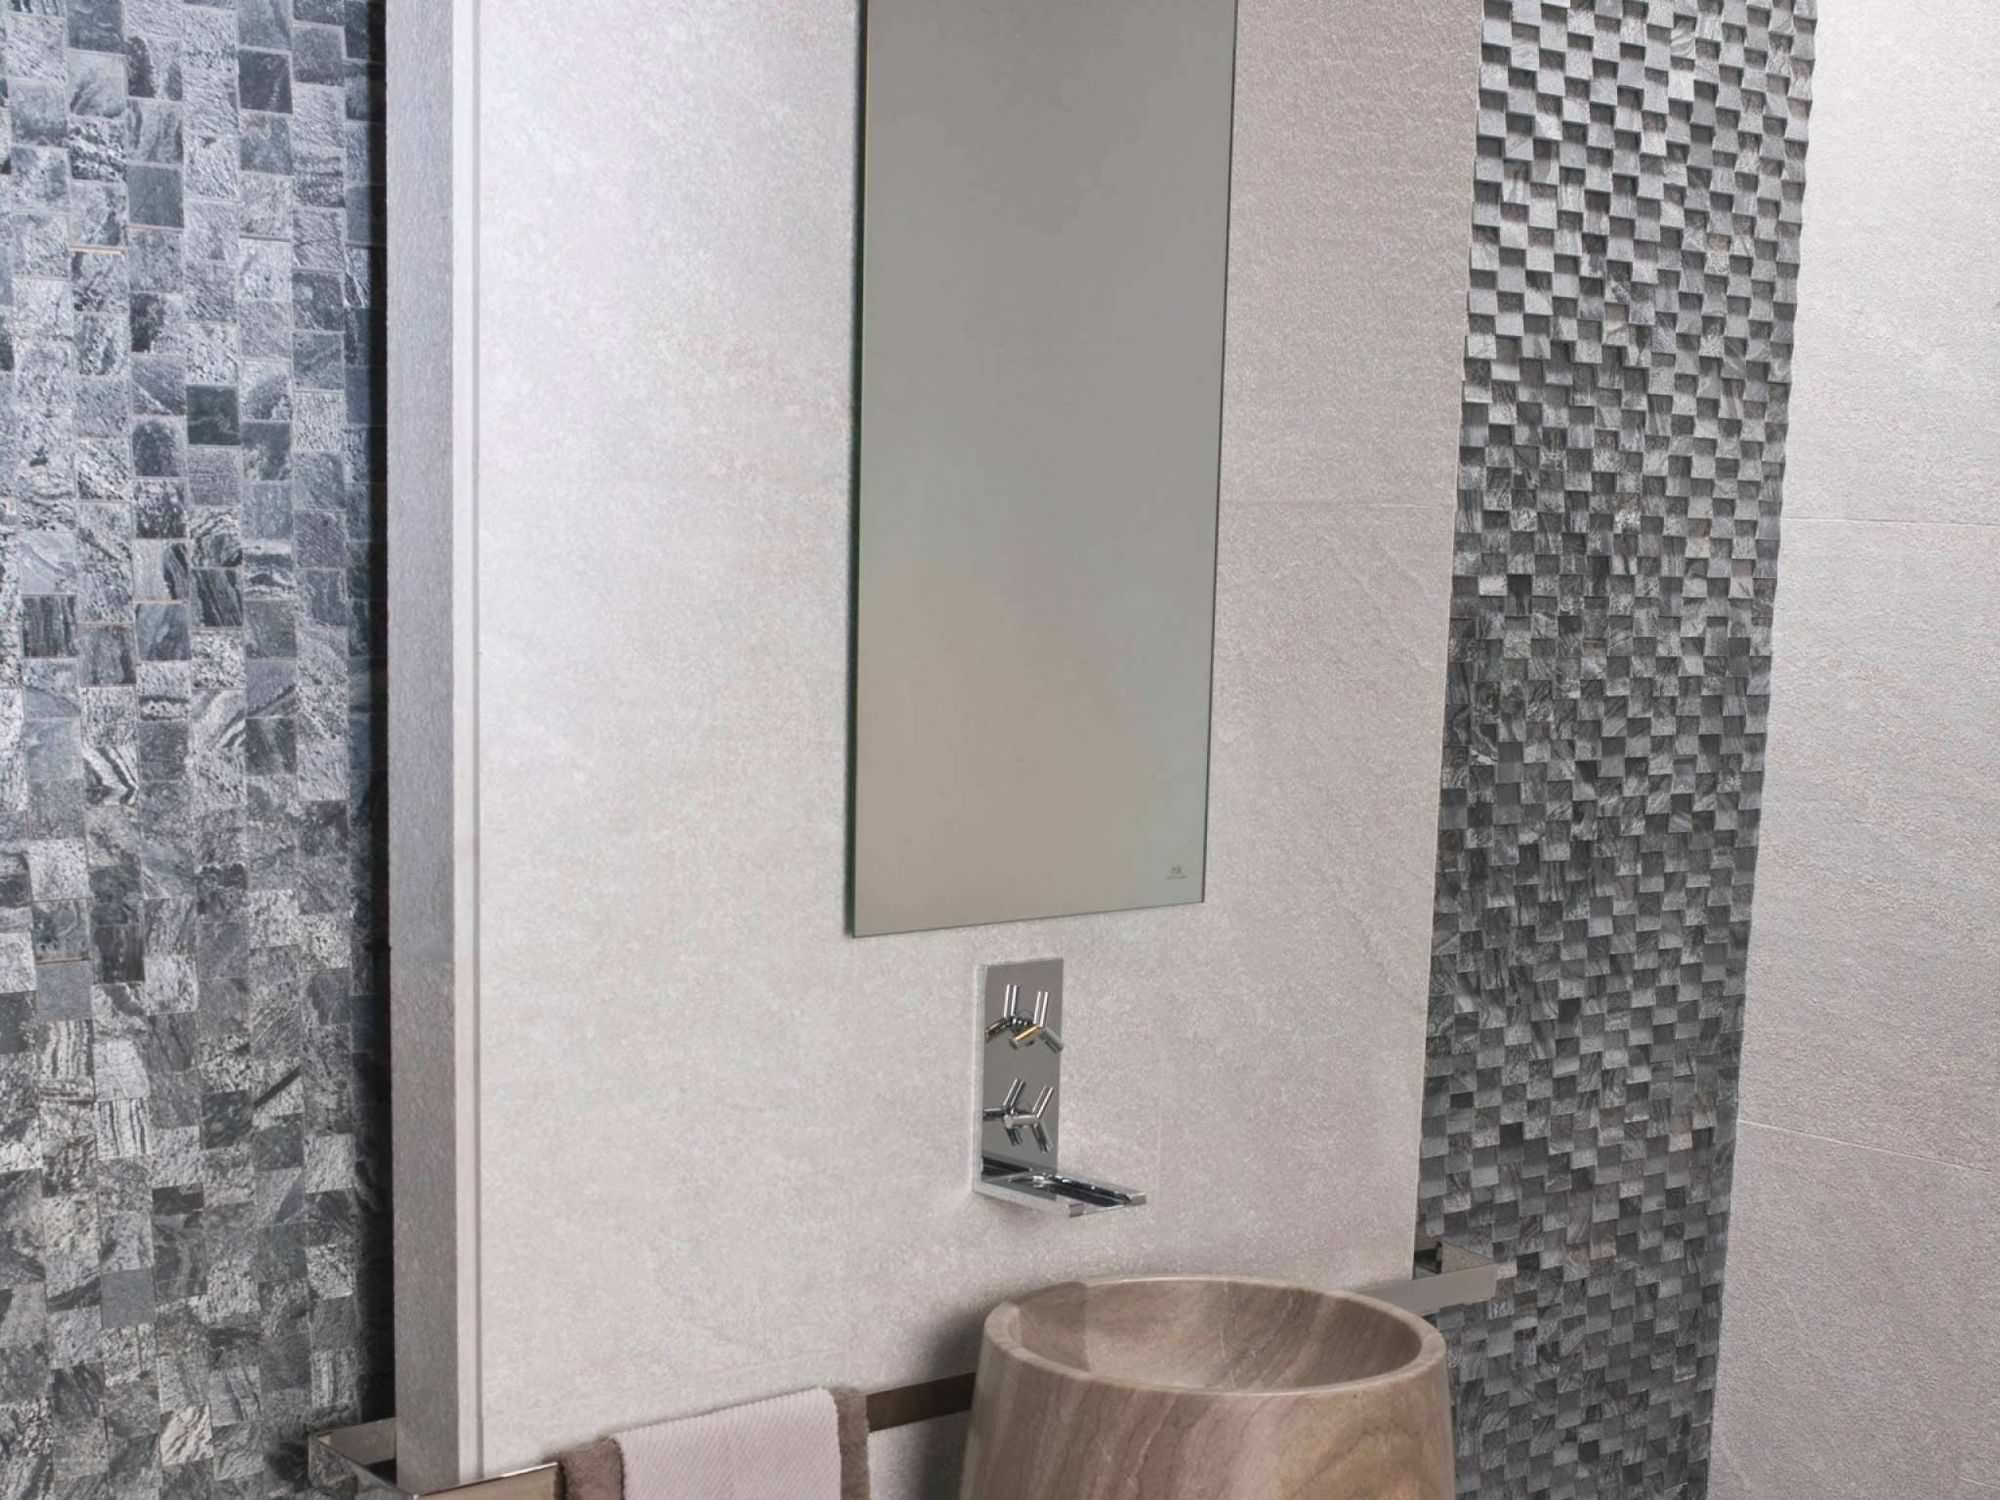 Bathroom Tiles In Chennai bathroom tile / wall / quartzite / plain - chennai white flamed